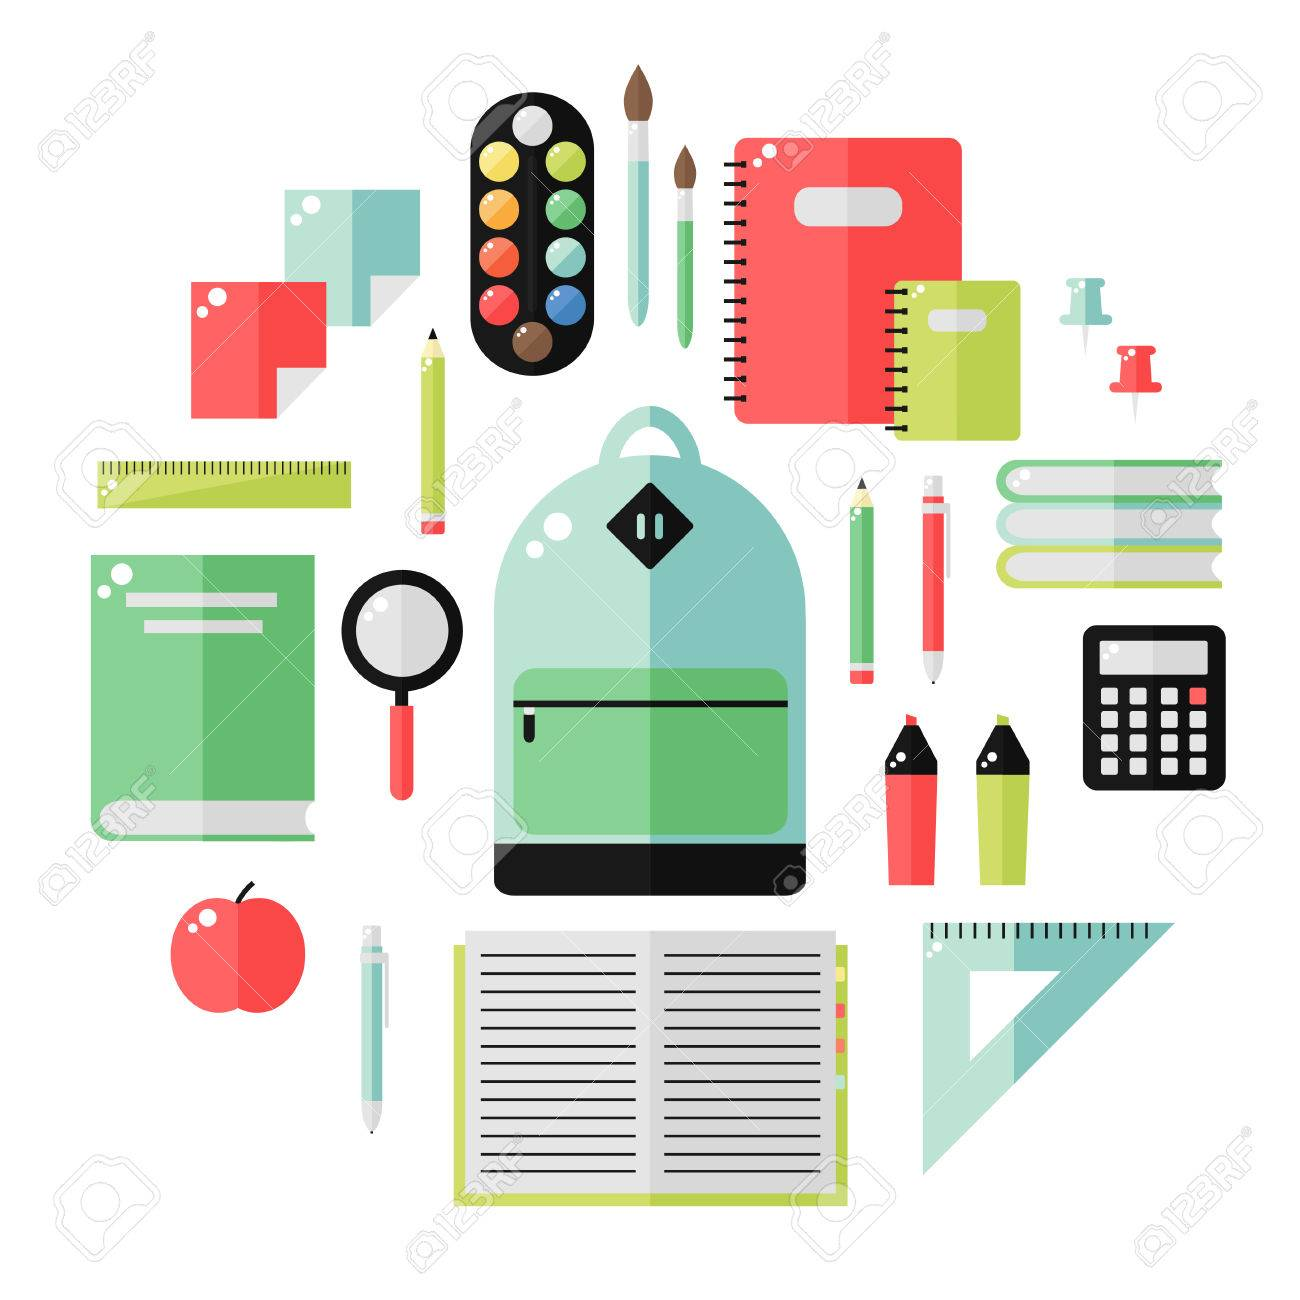 60497804-school-supplies-isolated-icons-on-white-background-school-books-backpack-pencil-ruler-notebook-paint.jpg